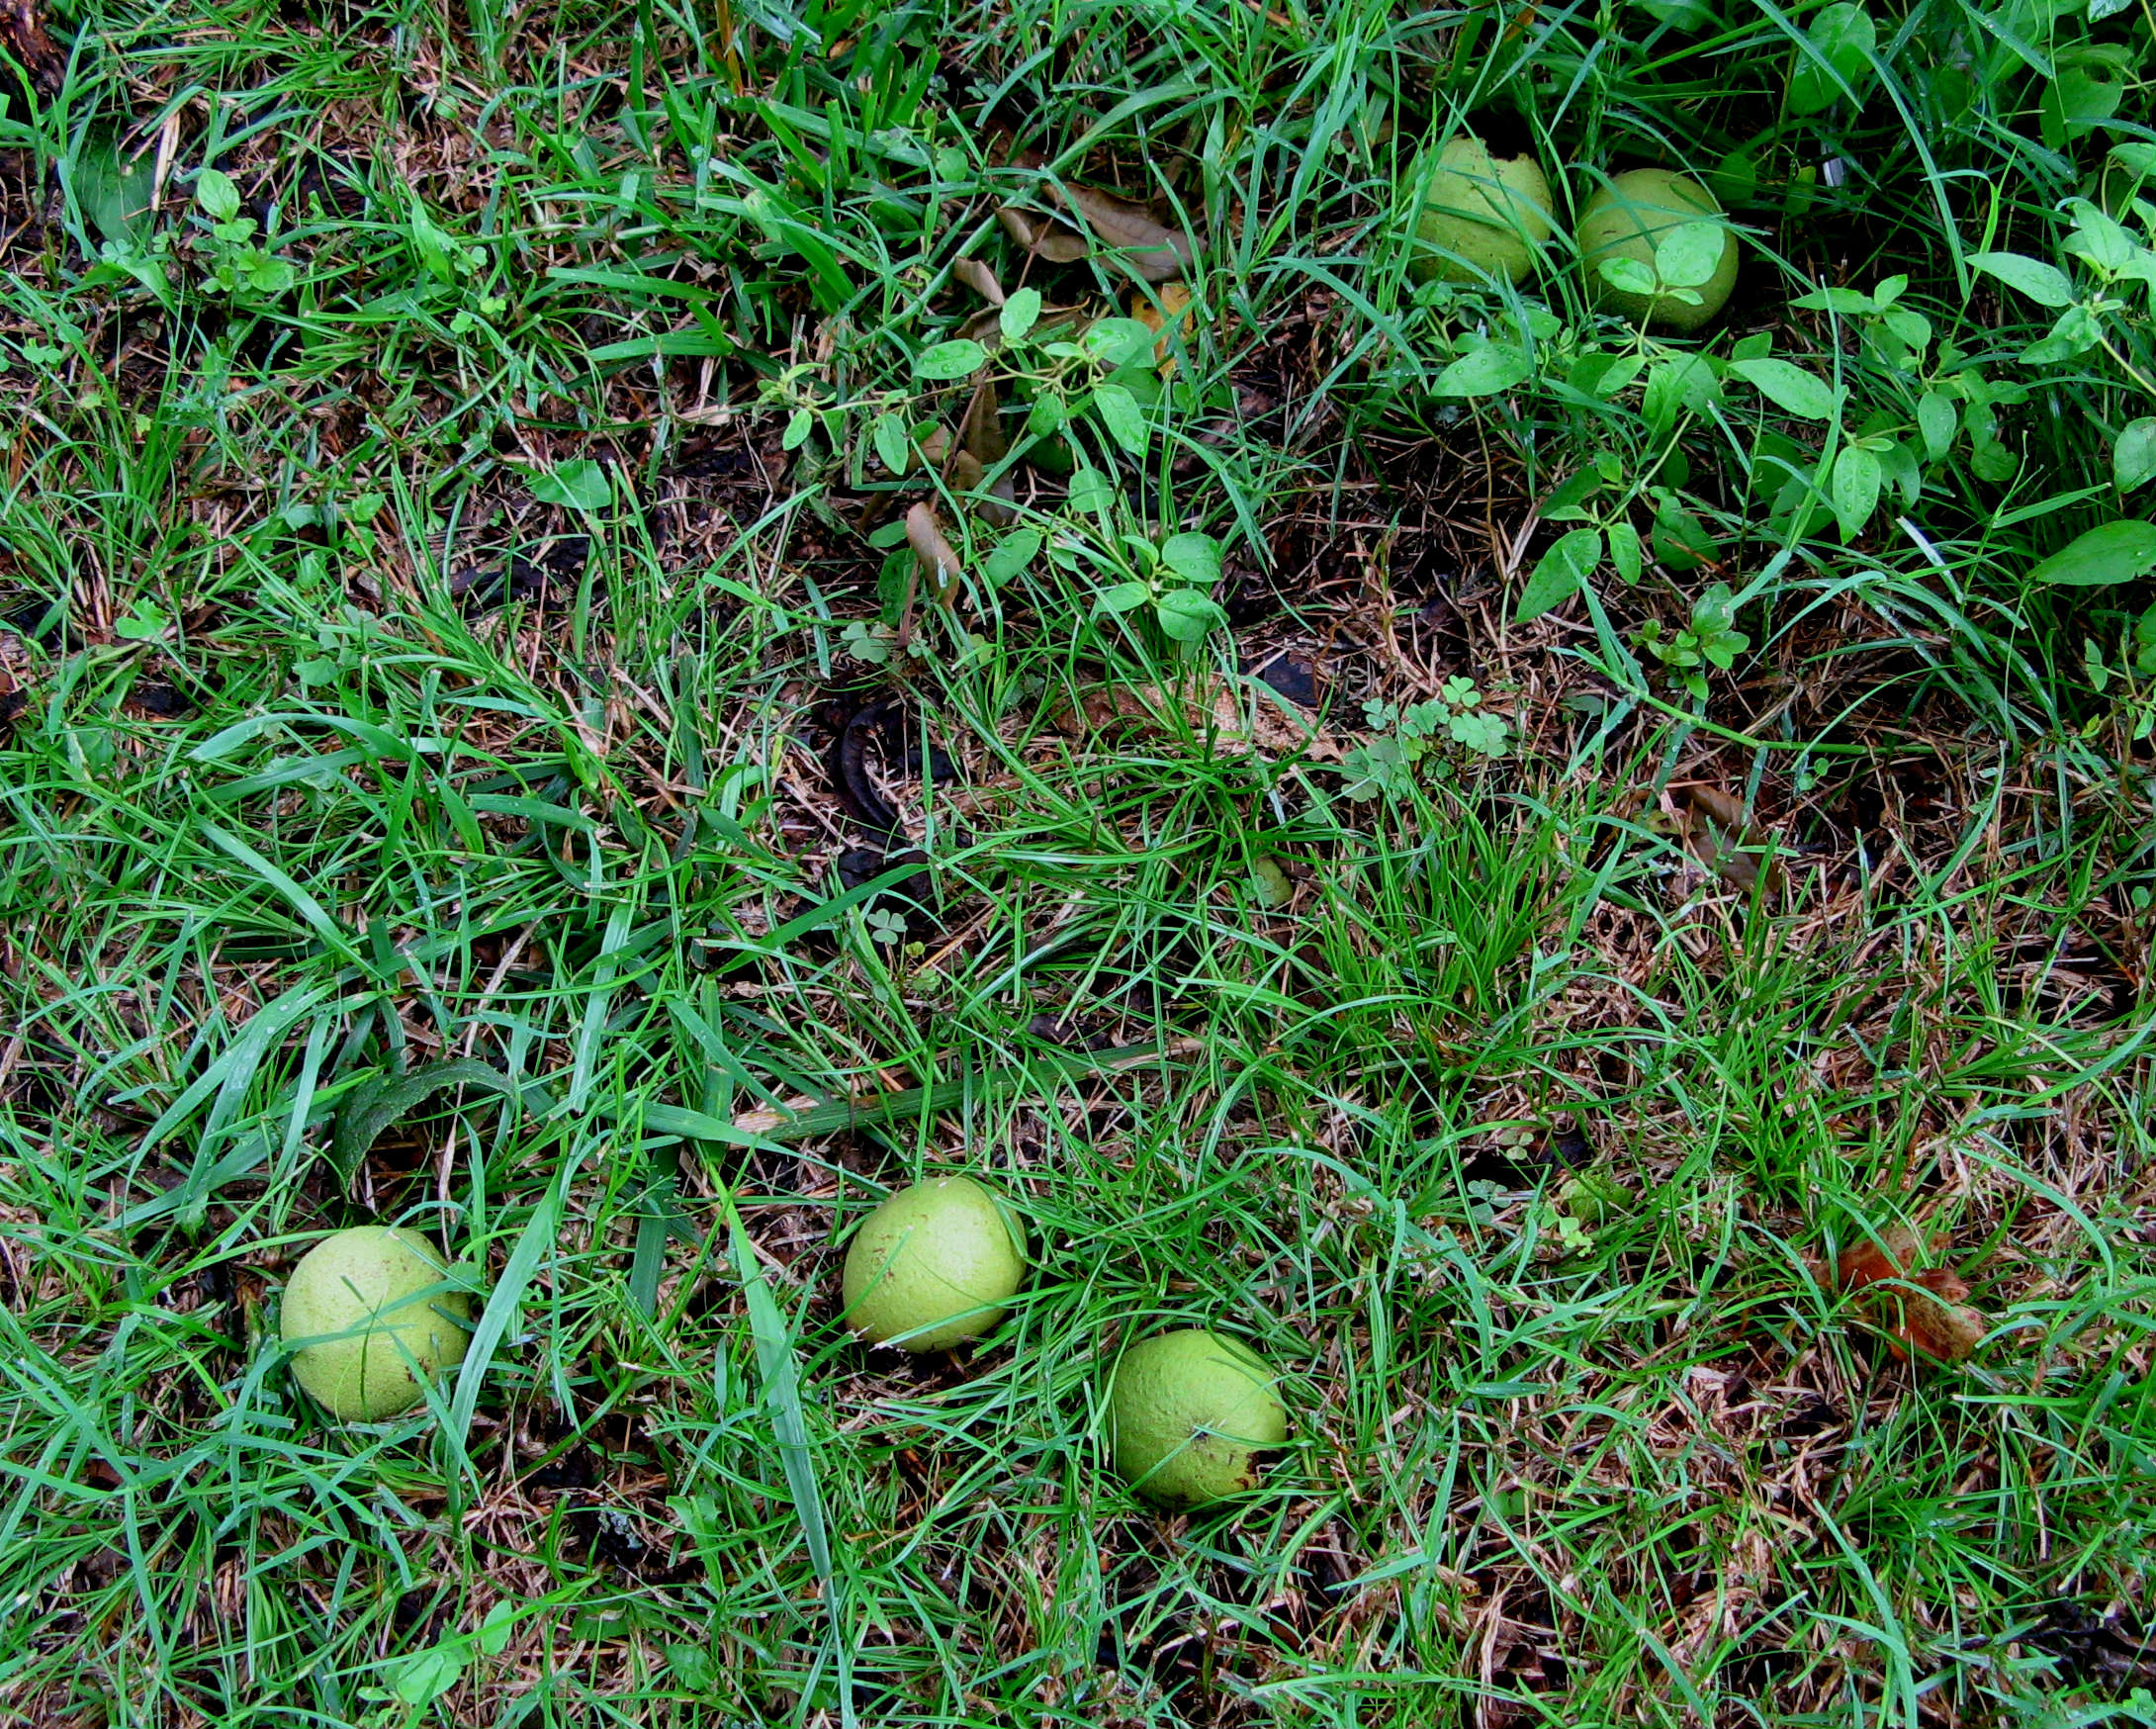 Hickory Nuts in Grass